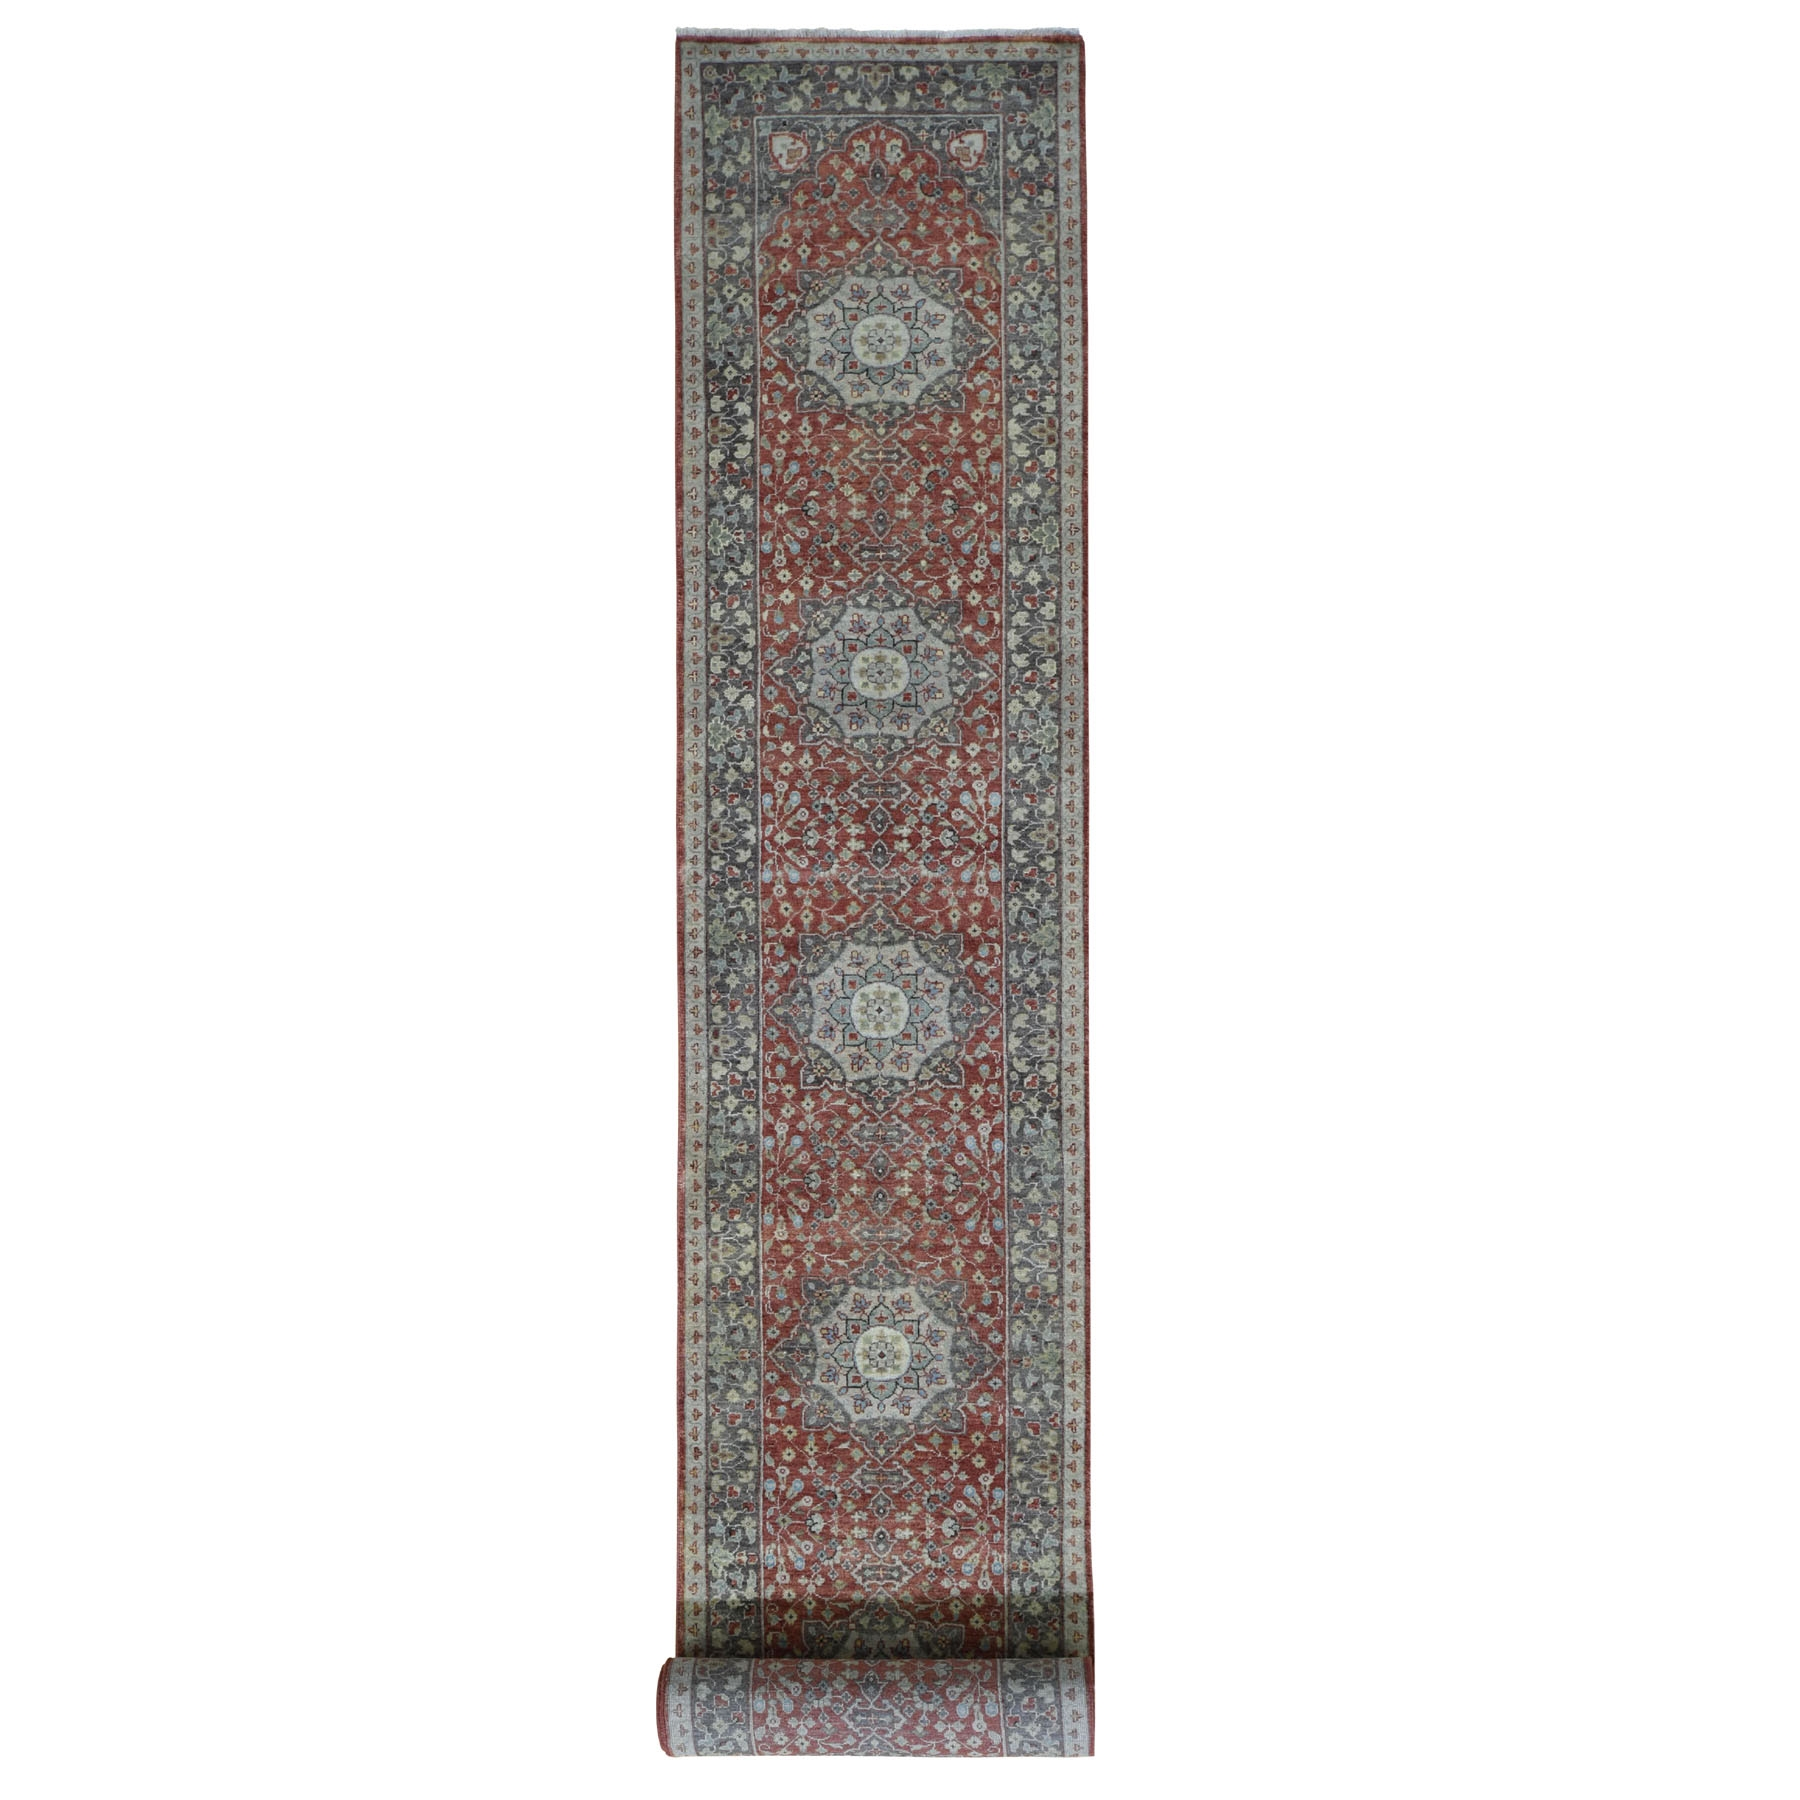 "2'6""X15'10""  Hand Knotted Xl Runner Antiqued Tabriz Haji Jalili Re-Creation Oriental Rug moad8a88"